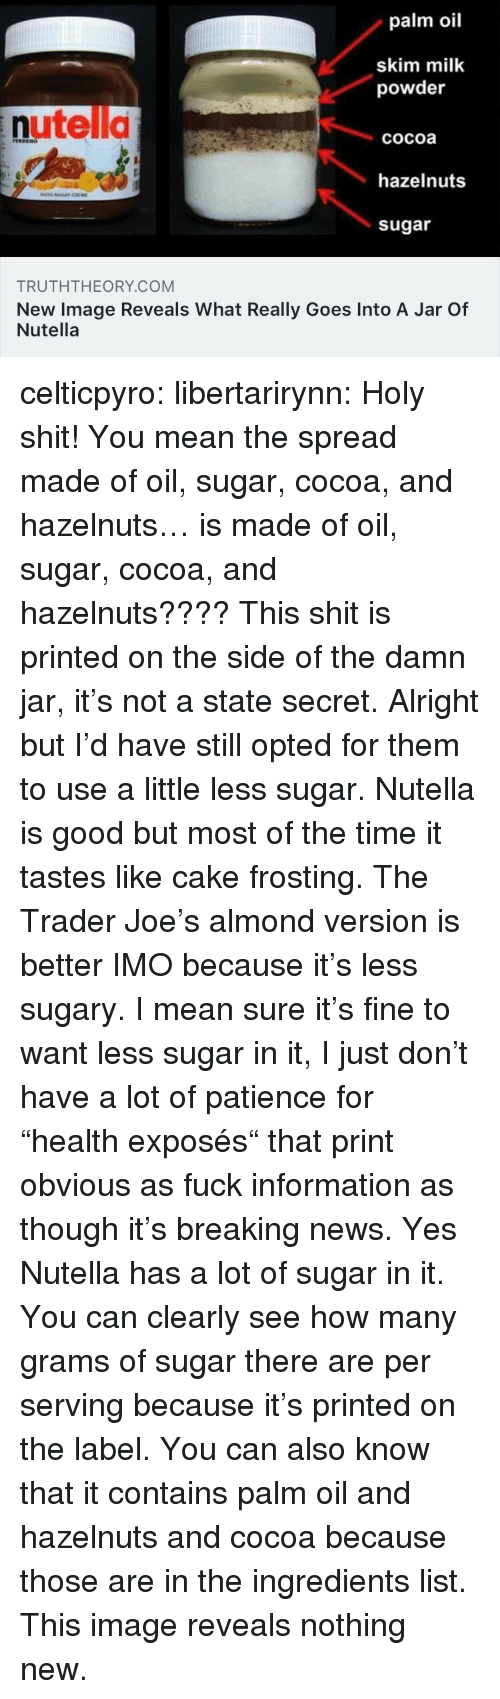 """News, Shit, and Tumblr: palm oil  skim milk  powder  nutella  cocoa  hazelnuts  sugar  TRUTHTHEORY.COM  New Image Reveals What Really Goes Into A Jar Of  Nutella celticpyro:  libertarirynn: Holy shit! You mean the spread made of oil, sugar, cocoa, and hazelnuts… is made of oil, sugar, cocoa, and hazelnuts????  This shit is printed on the side of the damn jar, it's not a state secret.  Alright but I'd have still opted for them to use a little less sugar. Nutella is good but most of the time it tastes like cake frosting. The Trader Joe's almond version is better IMO because it's less sugary.  I mean sure it's fine to want less sugar in it, I just don't have a lot of patience for """"health exposés"""" that print obvious as fuck information as though it's breaking news. Yes Nutella has a lot of sugar in it. You can clearly see how many grams of sugar there are per serving because it's printed on the label. You can also know that it contains palm oil and hazelnuts and cocoa because those are in the ingredients list. This image reveals nothing new."""